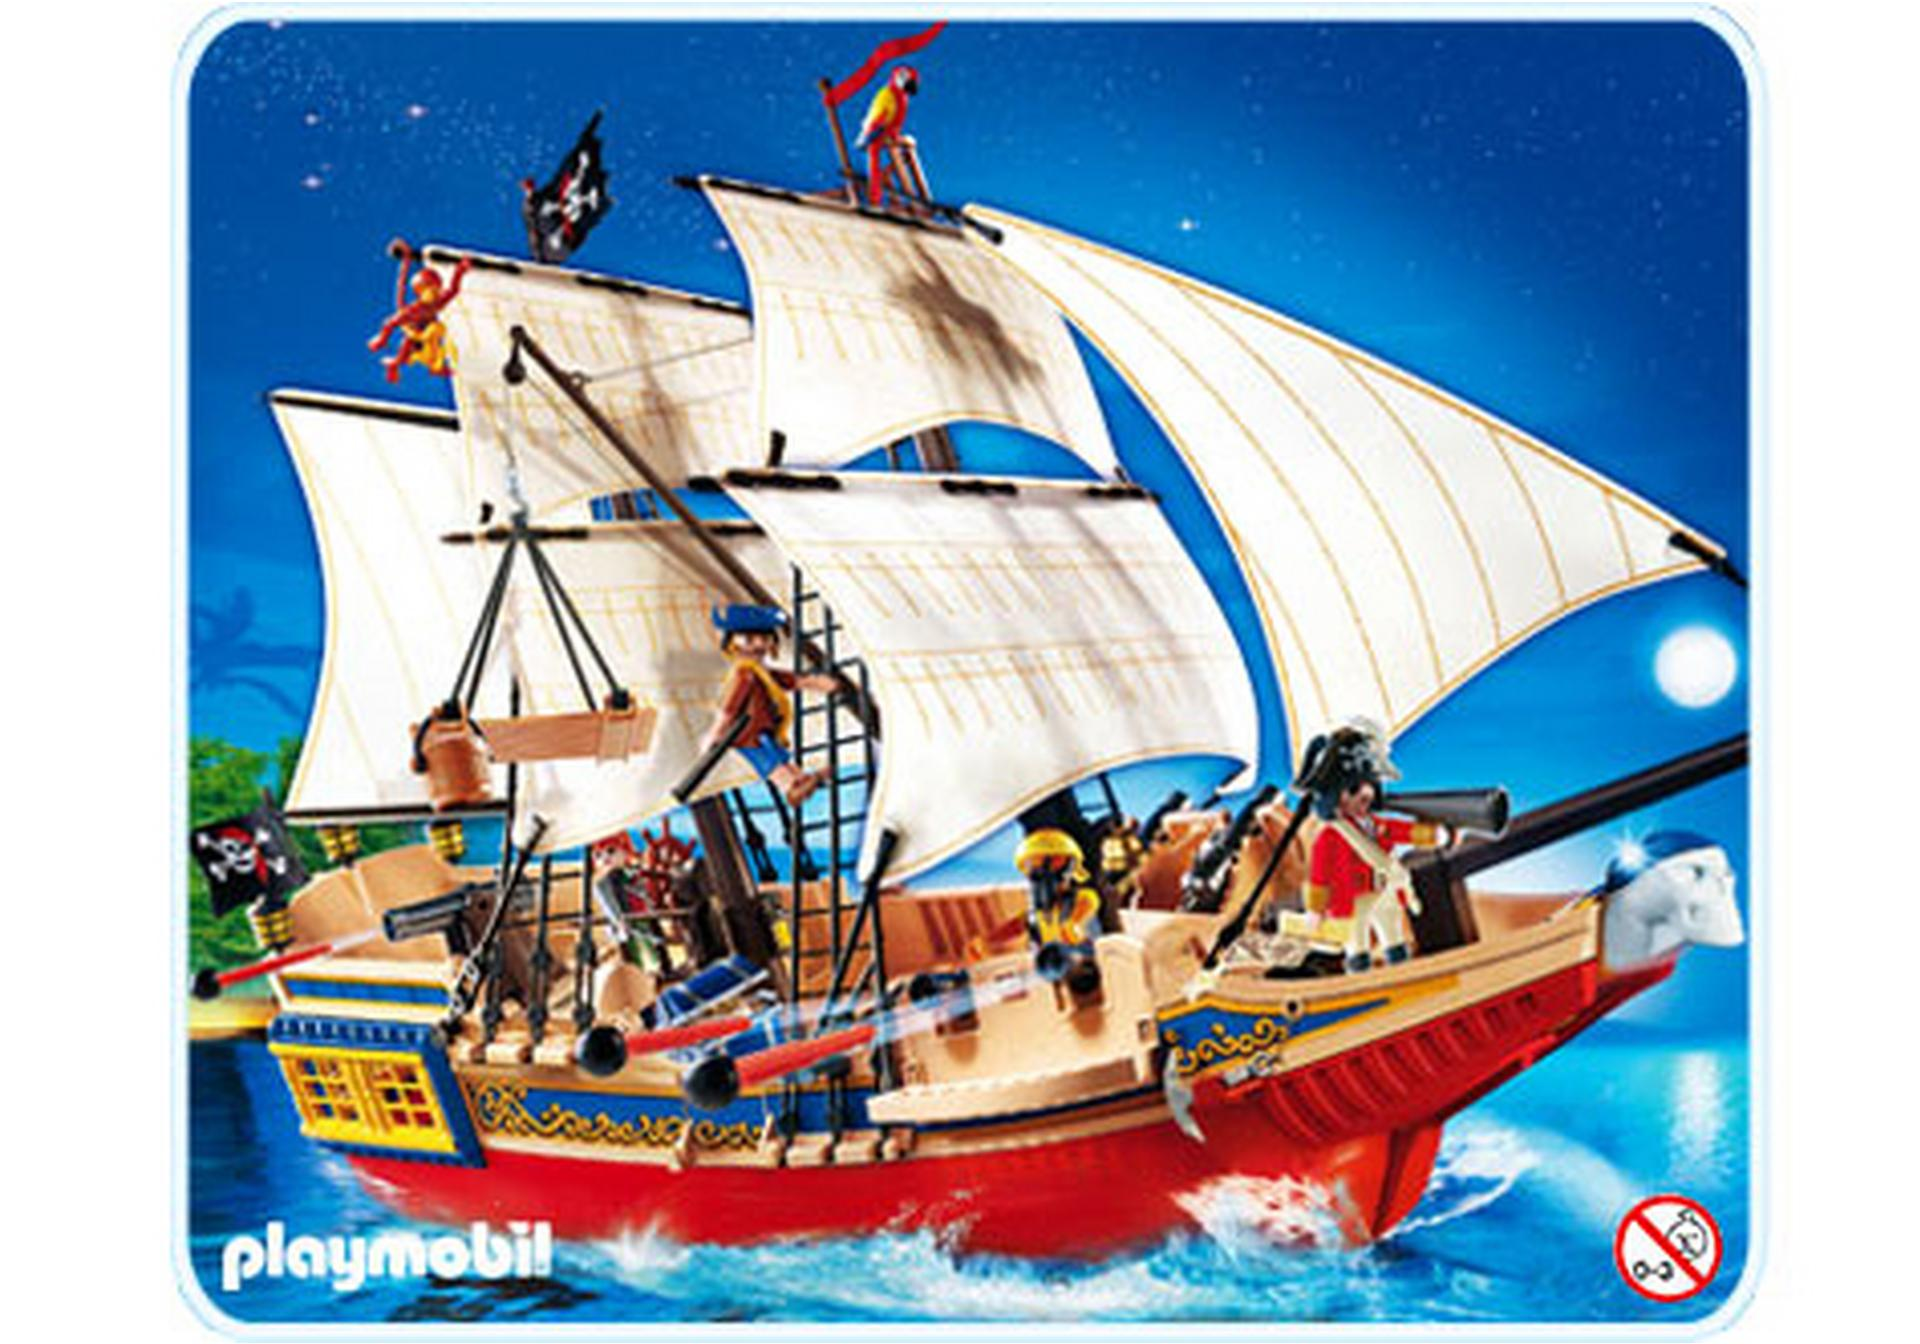 grand bateau camouflage des pirates 4290 a playmobil. Black Bedroom Furniture Sets. Home Design Ideas